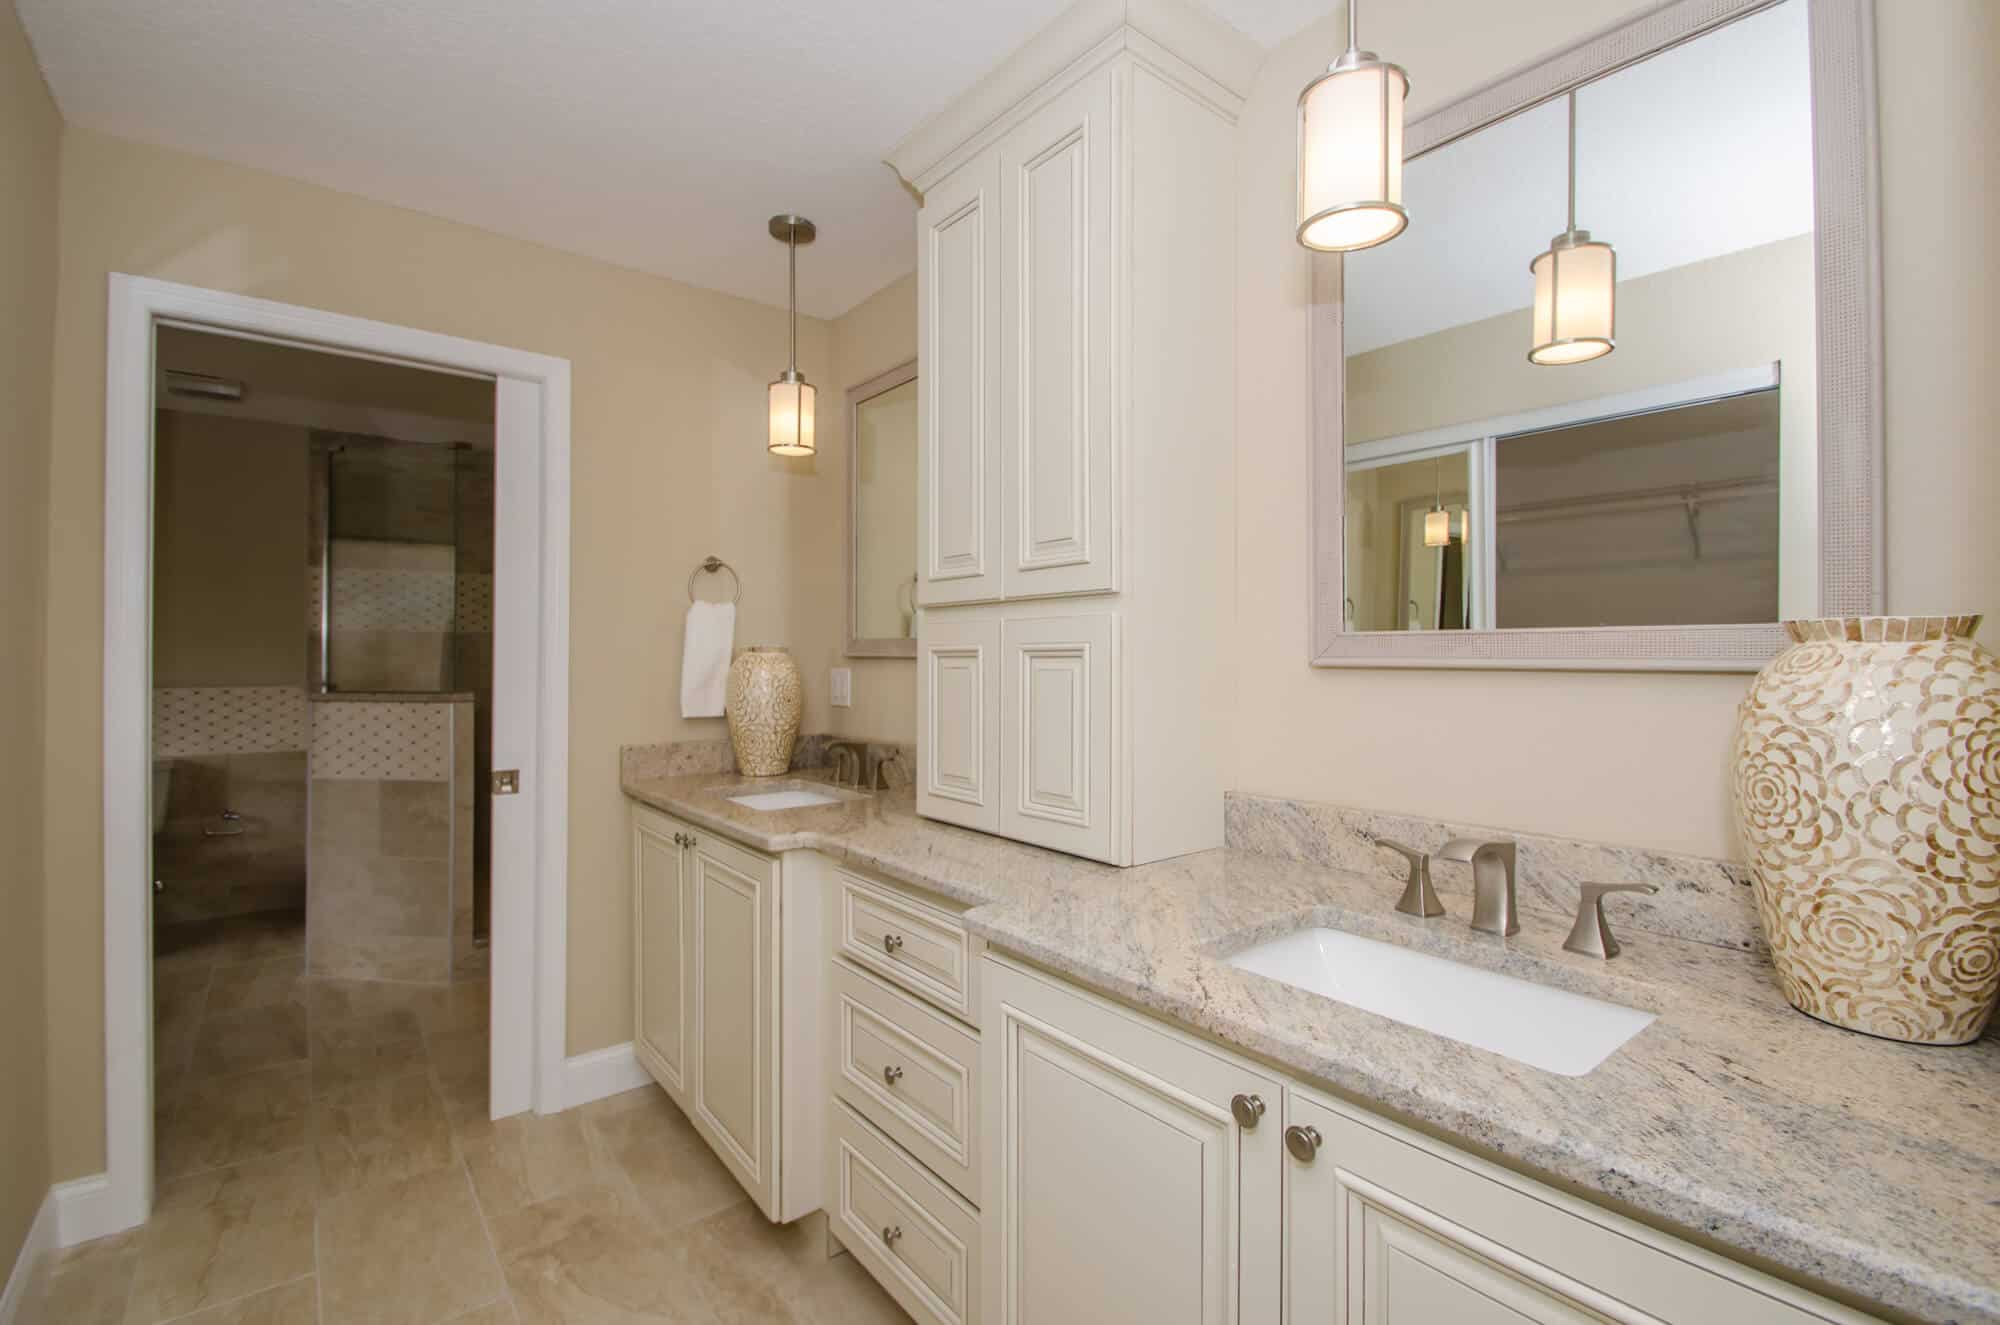 Bath remodel with new cabinetry